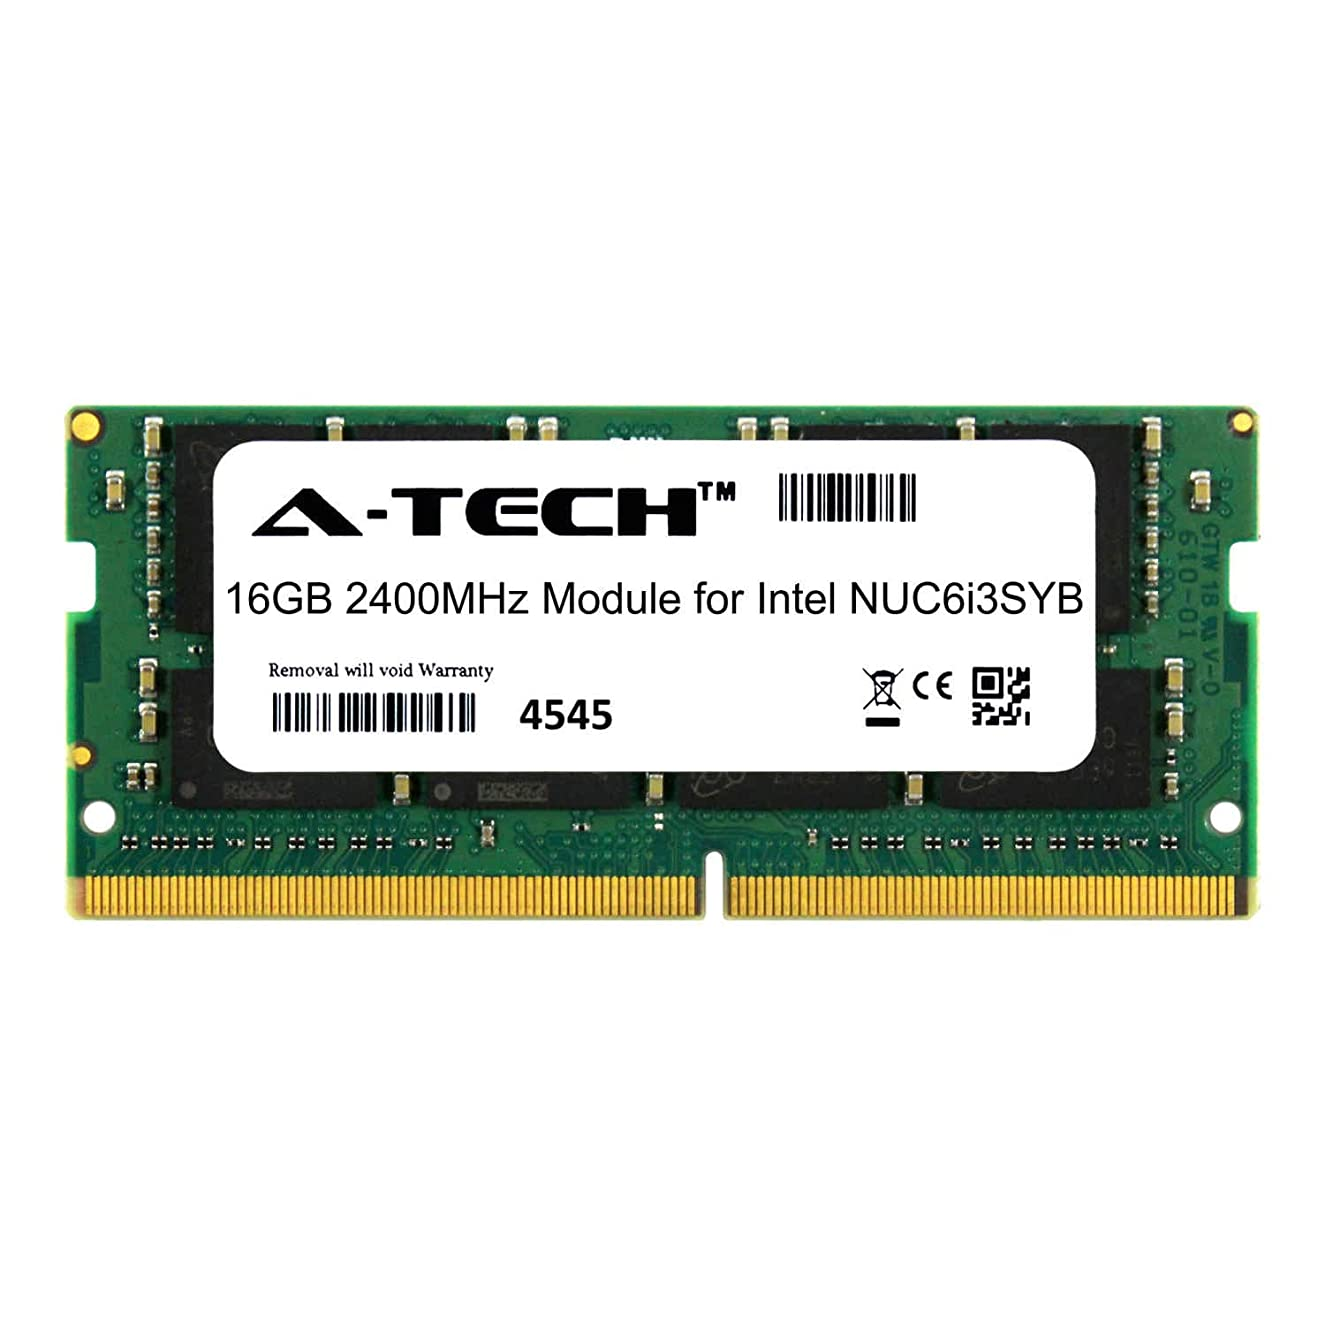 A-Tech 16GB Module for Intel NUC6i3SYB Laptop & Notebook Compatible DDR4 2400Mhz Memory Ram (ATMS370327A25831X1)